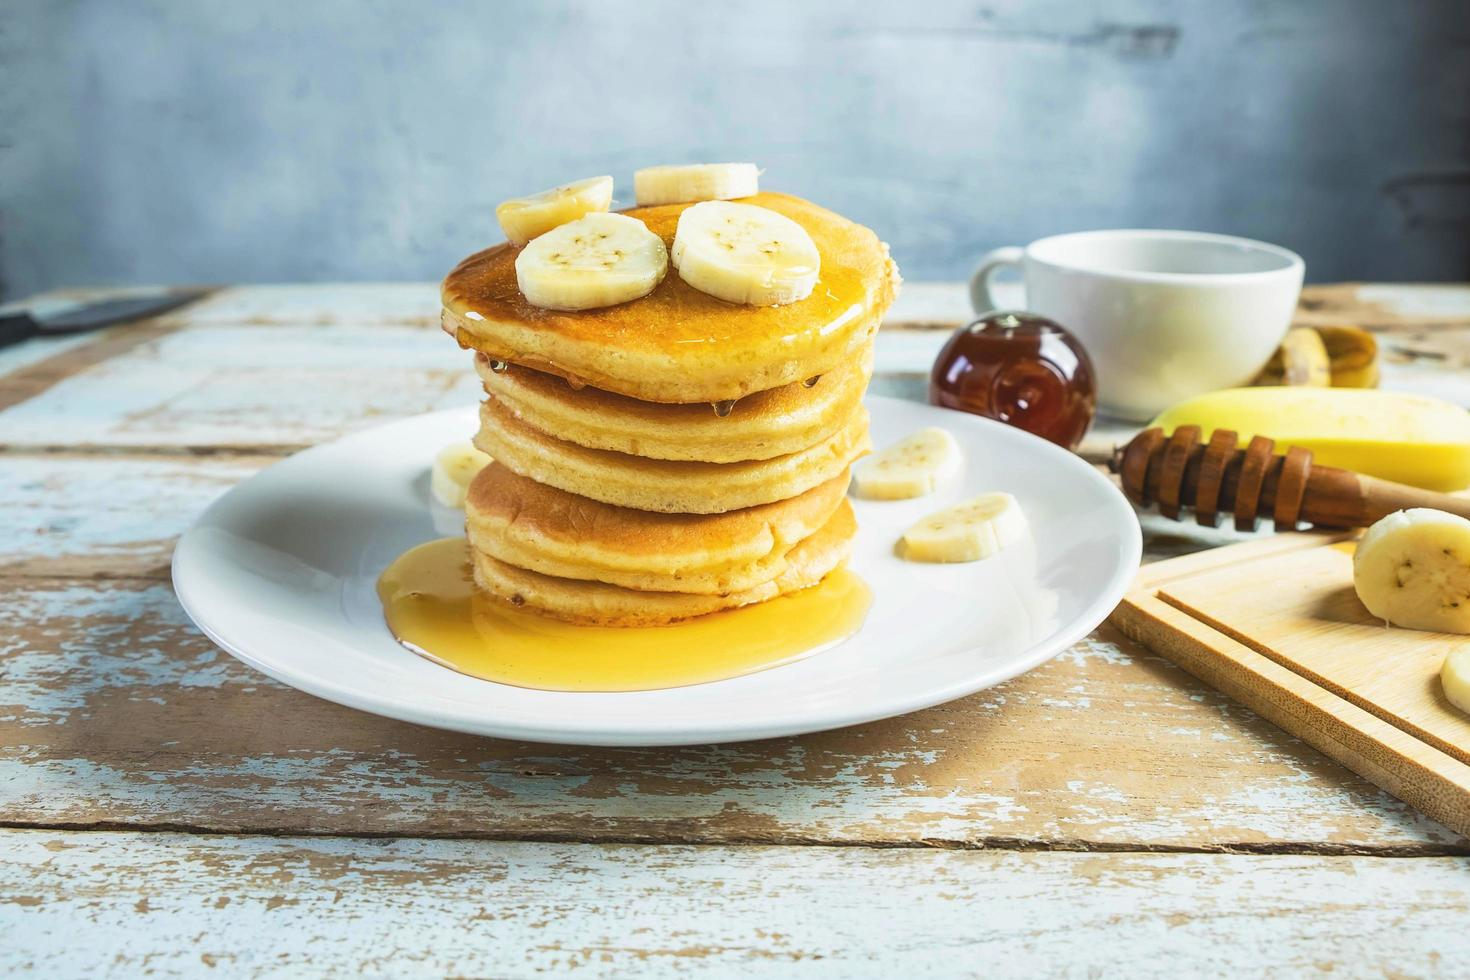 Pancakes topped with honey and bananas on the table photo